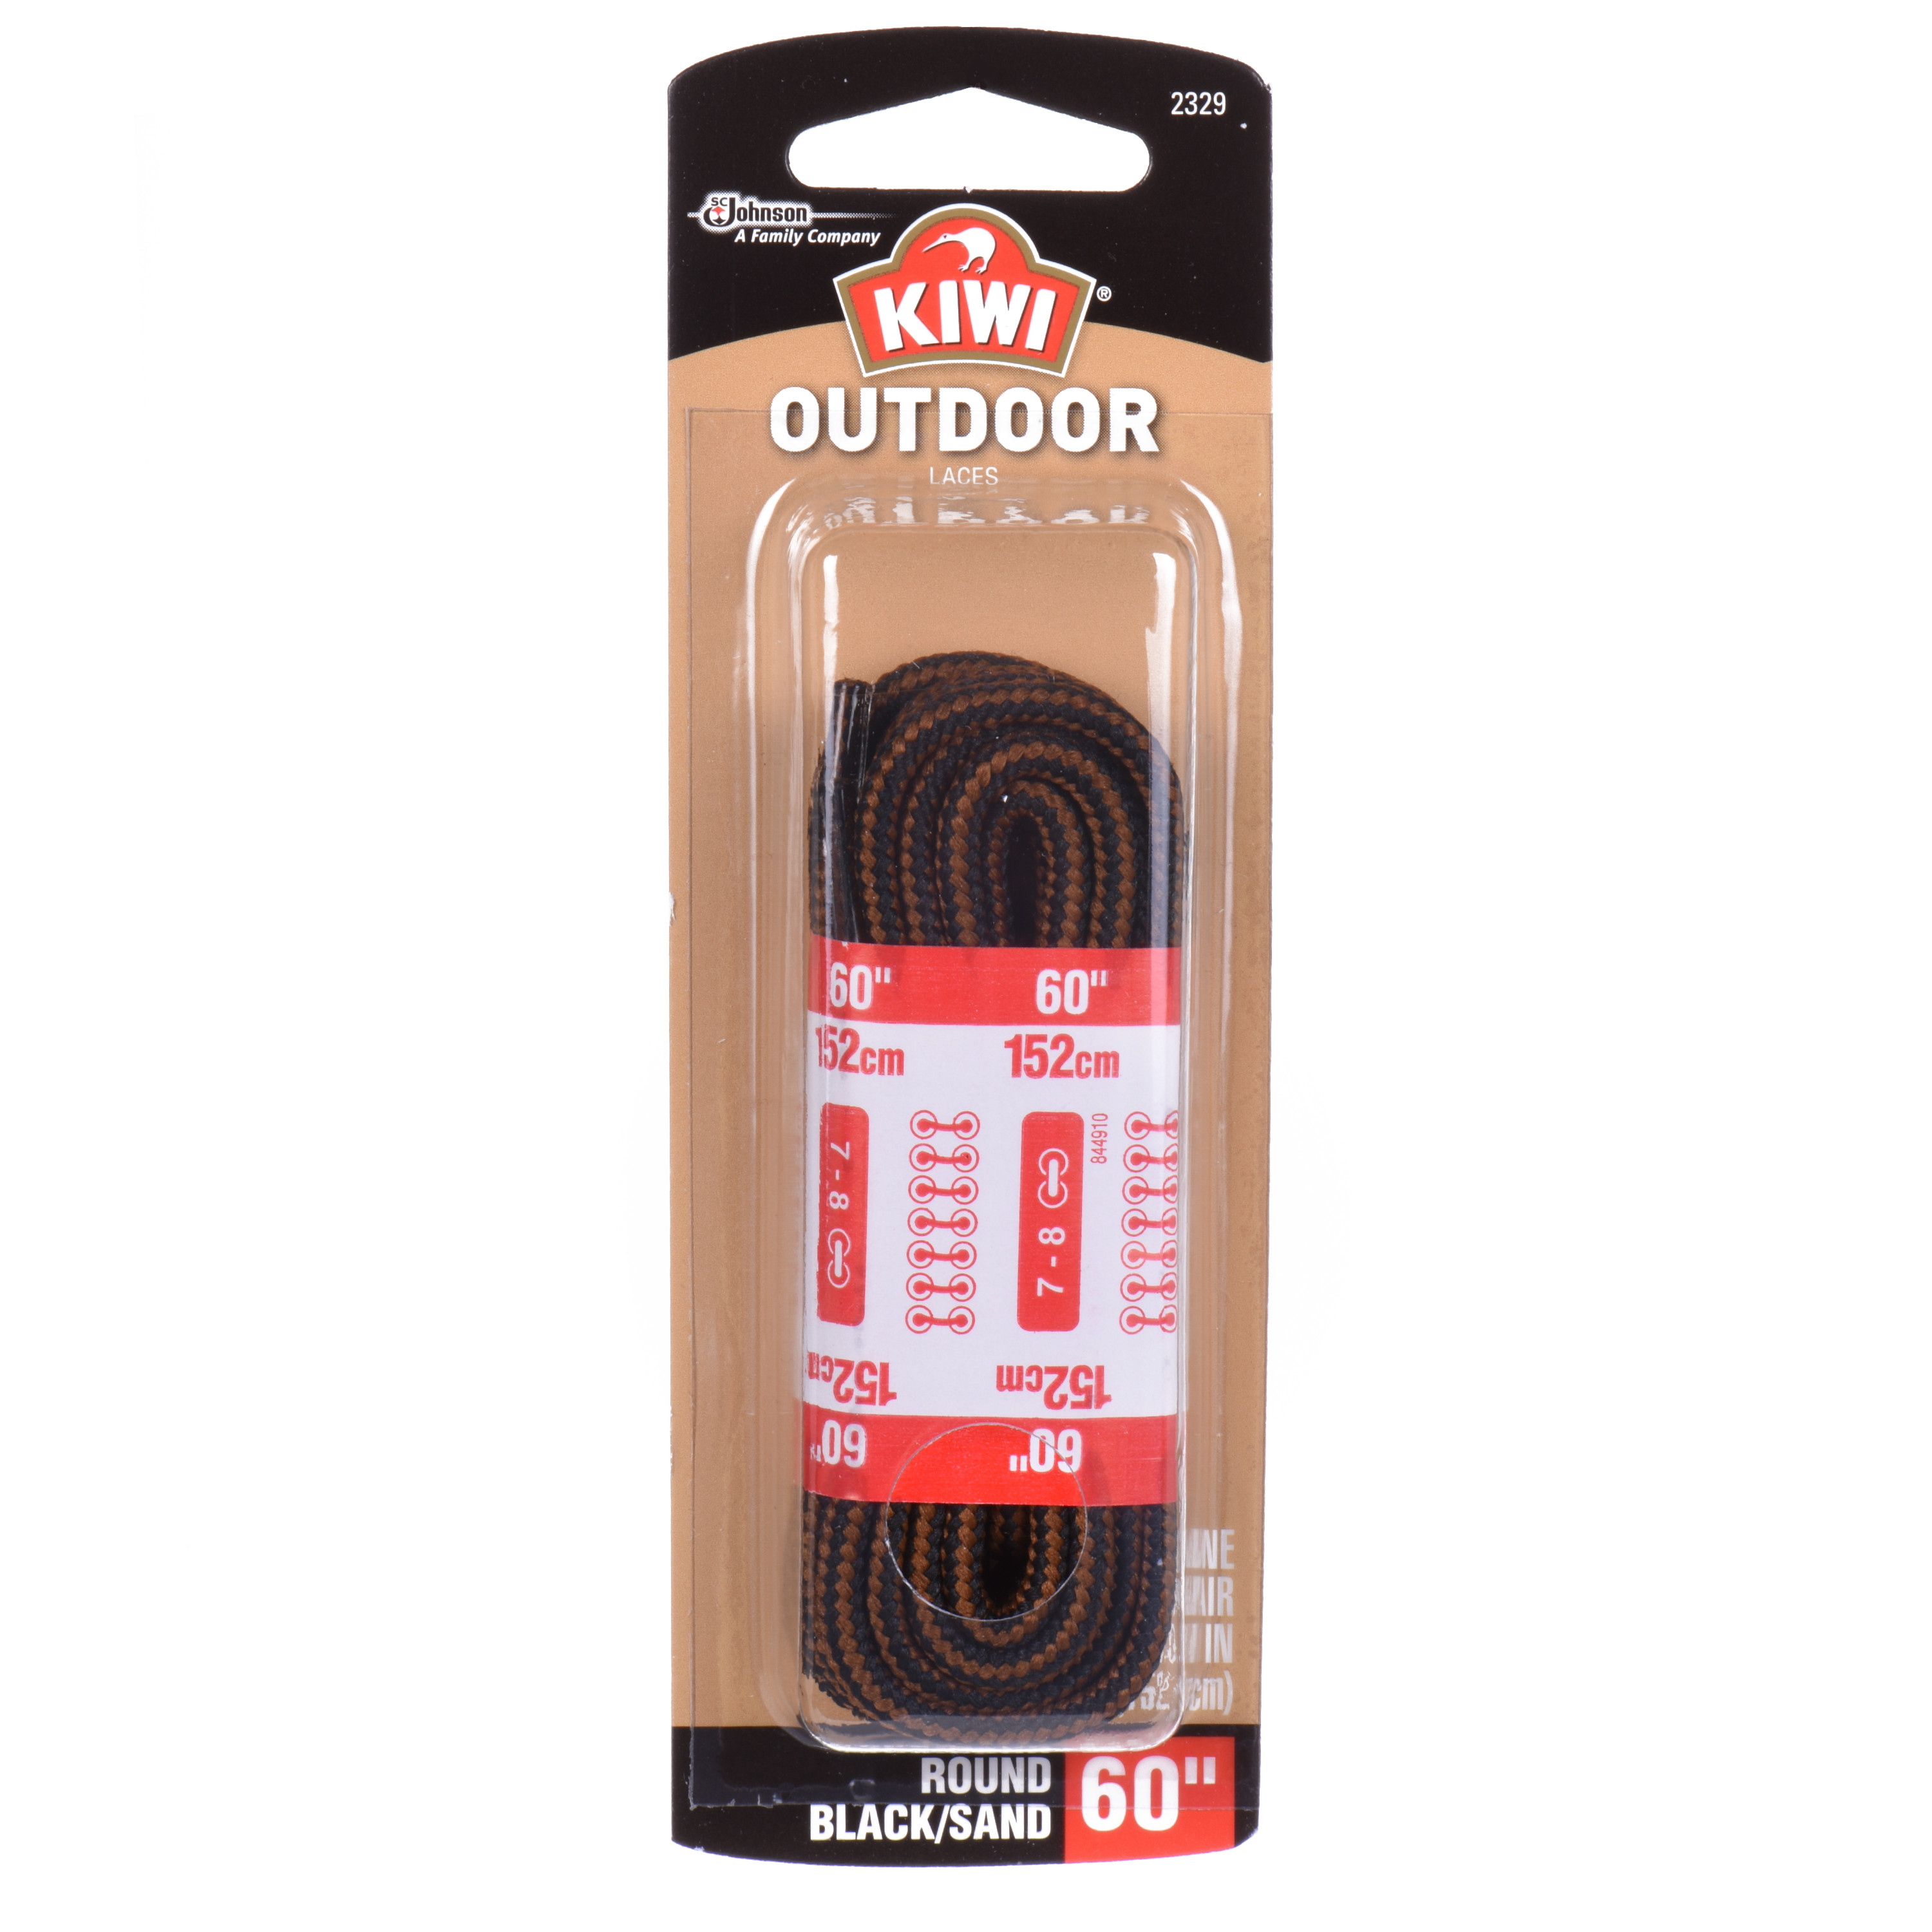 "(2 Pack) KIWI Outdoor Round Laces Black/Sandstone 60"" 2 pairs"